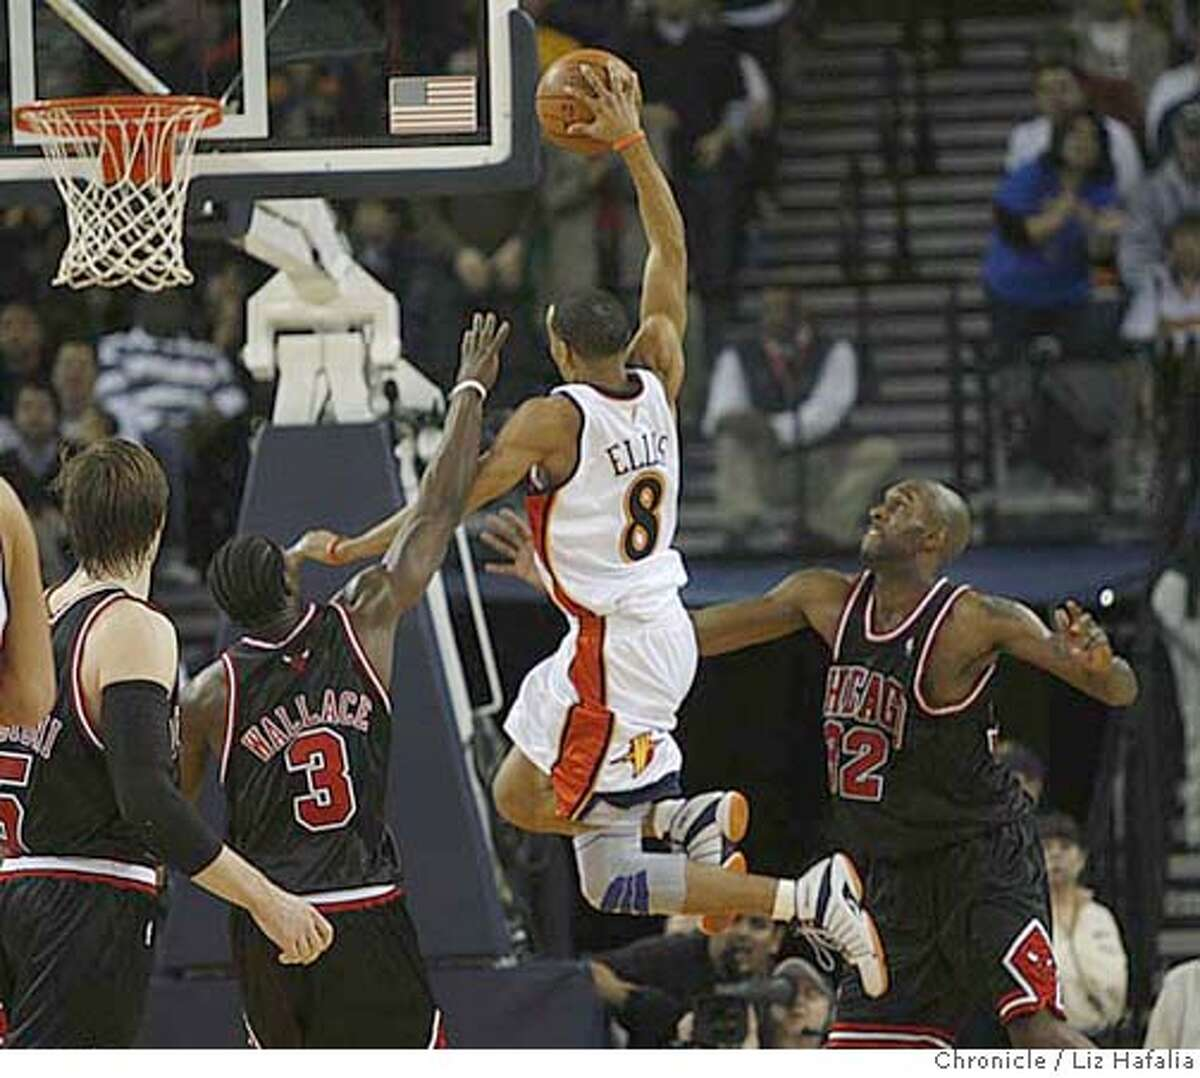 Golden State Warriors vs. Chicago Bulls at the Oracle arena. Warriors' Monta Ellis scores during the last minute of the second half. �2008, San Francisco Chronicle/ Liz Hafalia MANDATORY CREDIT FOR PHOTOG AND SAN FRANCISCO CHRONICLE. NO SALES- MAGS OUT.